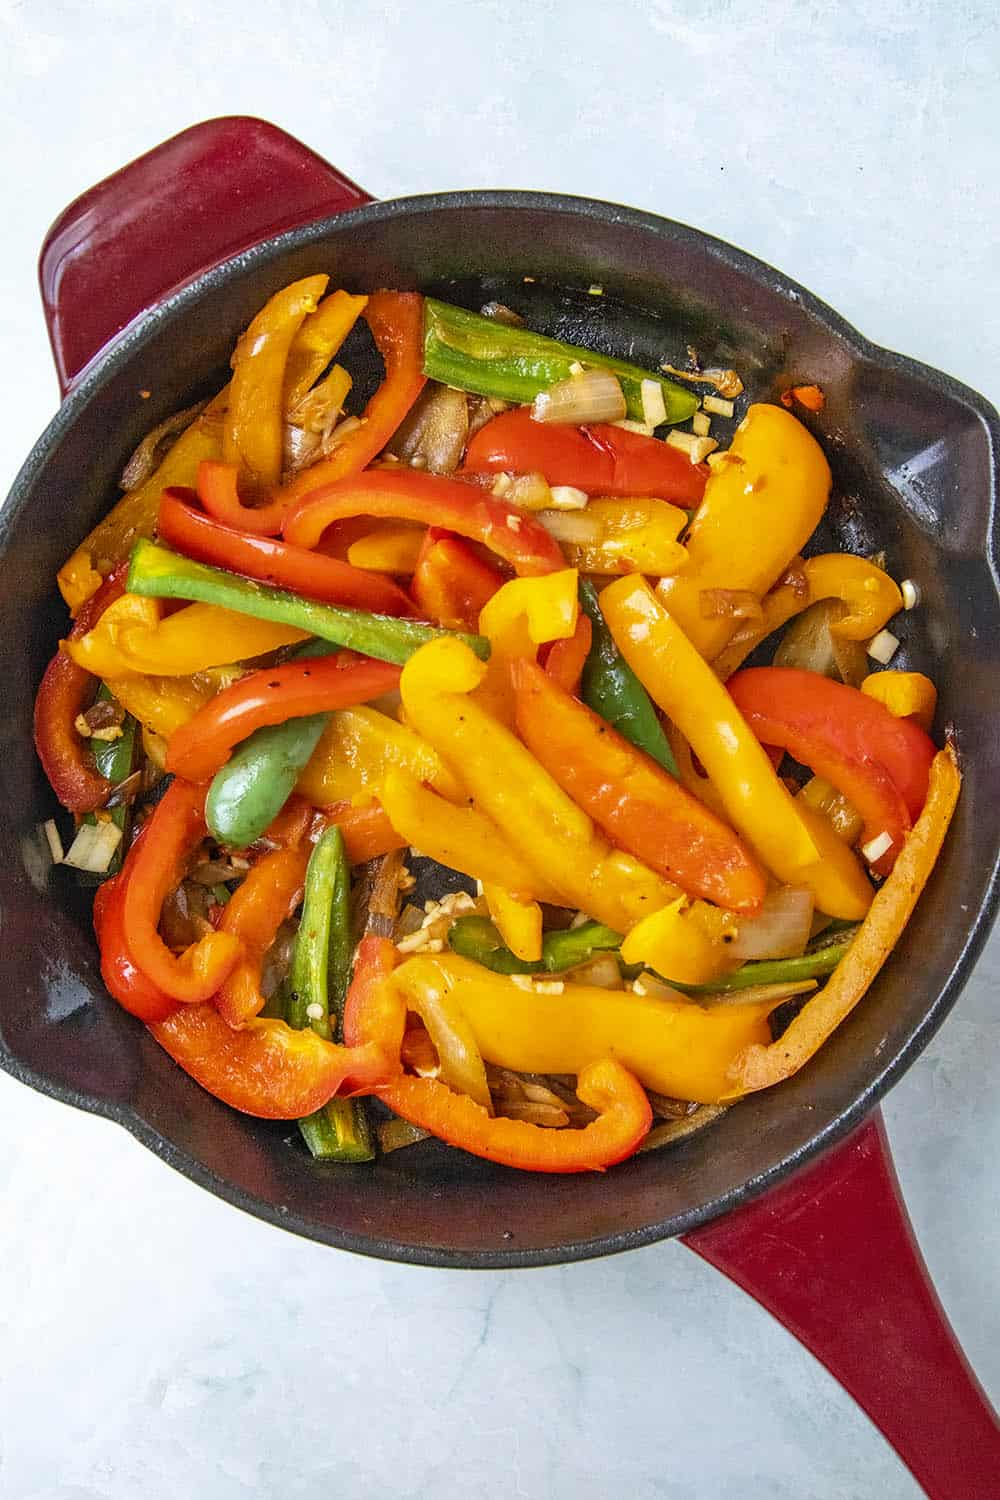 Cooking down the peppers